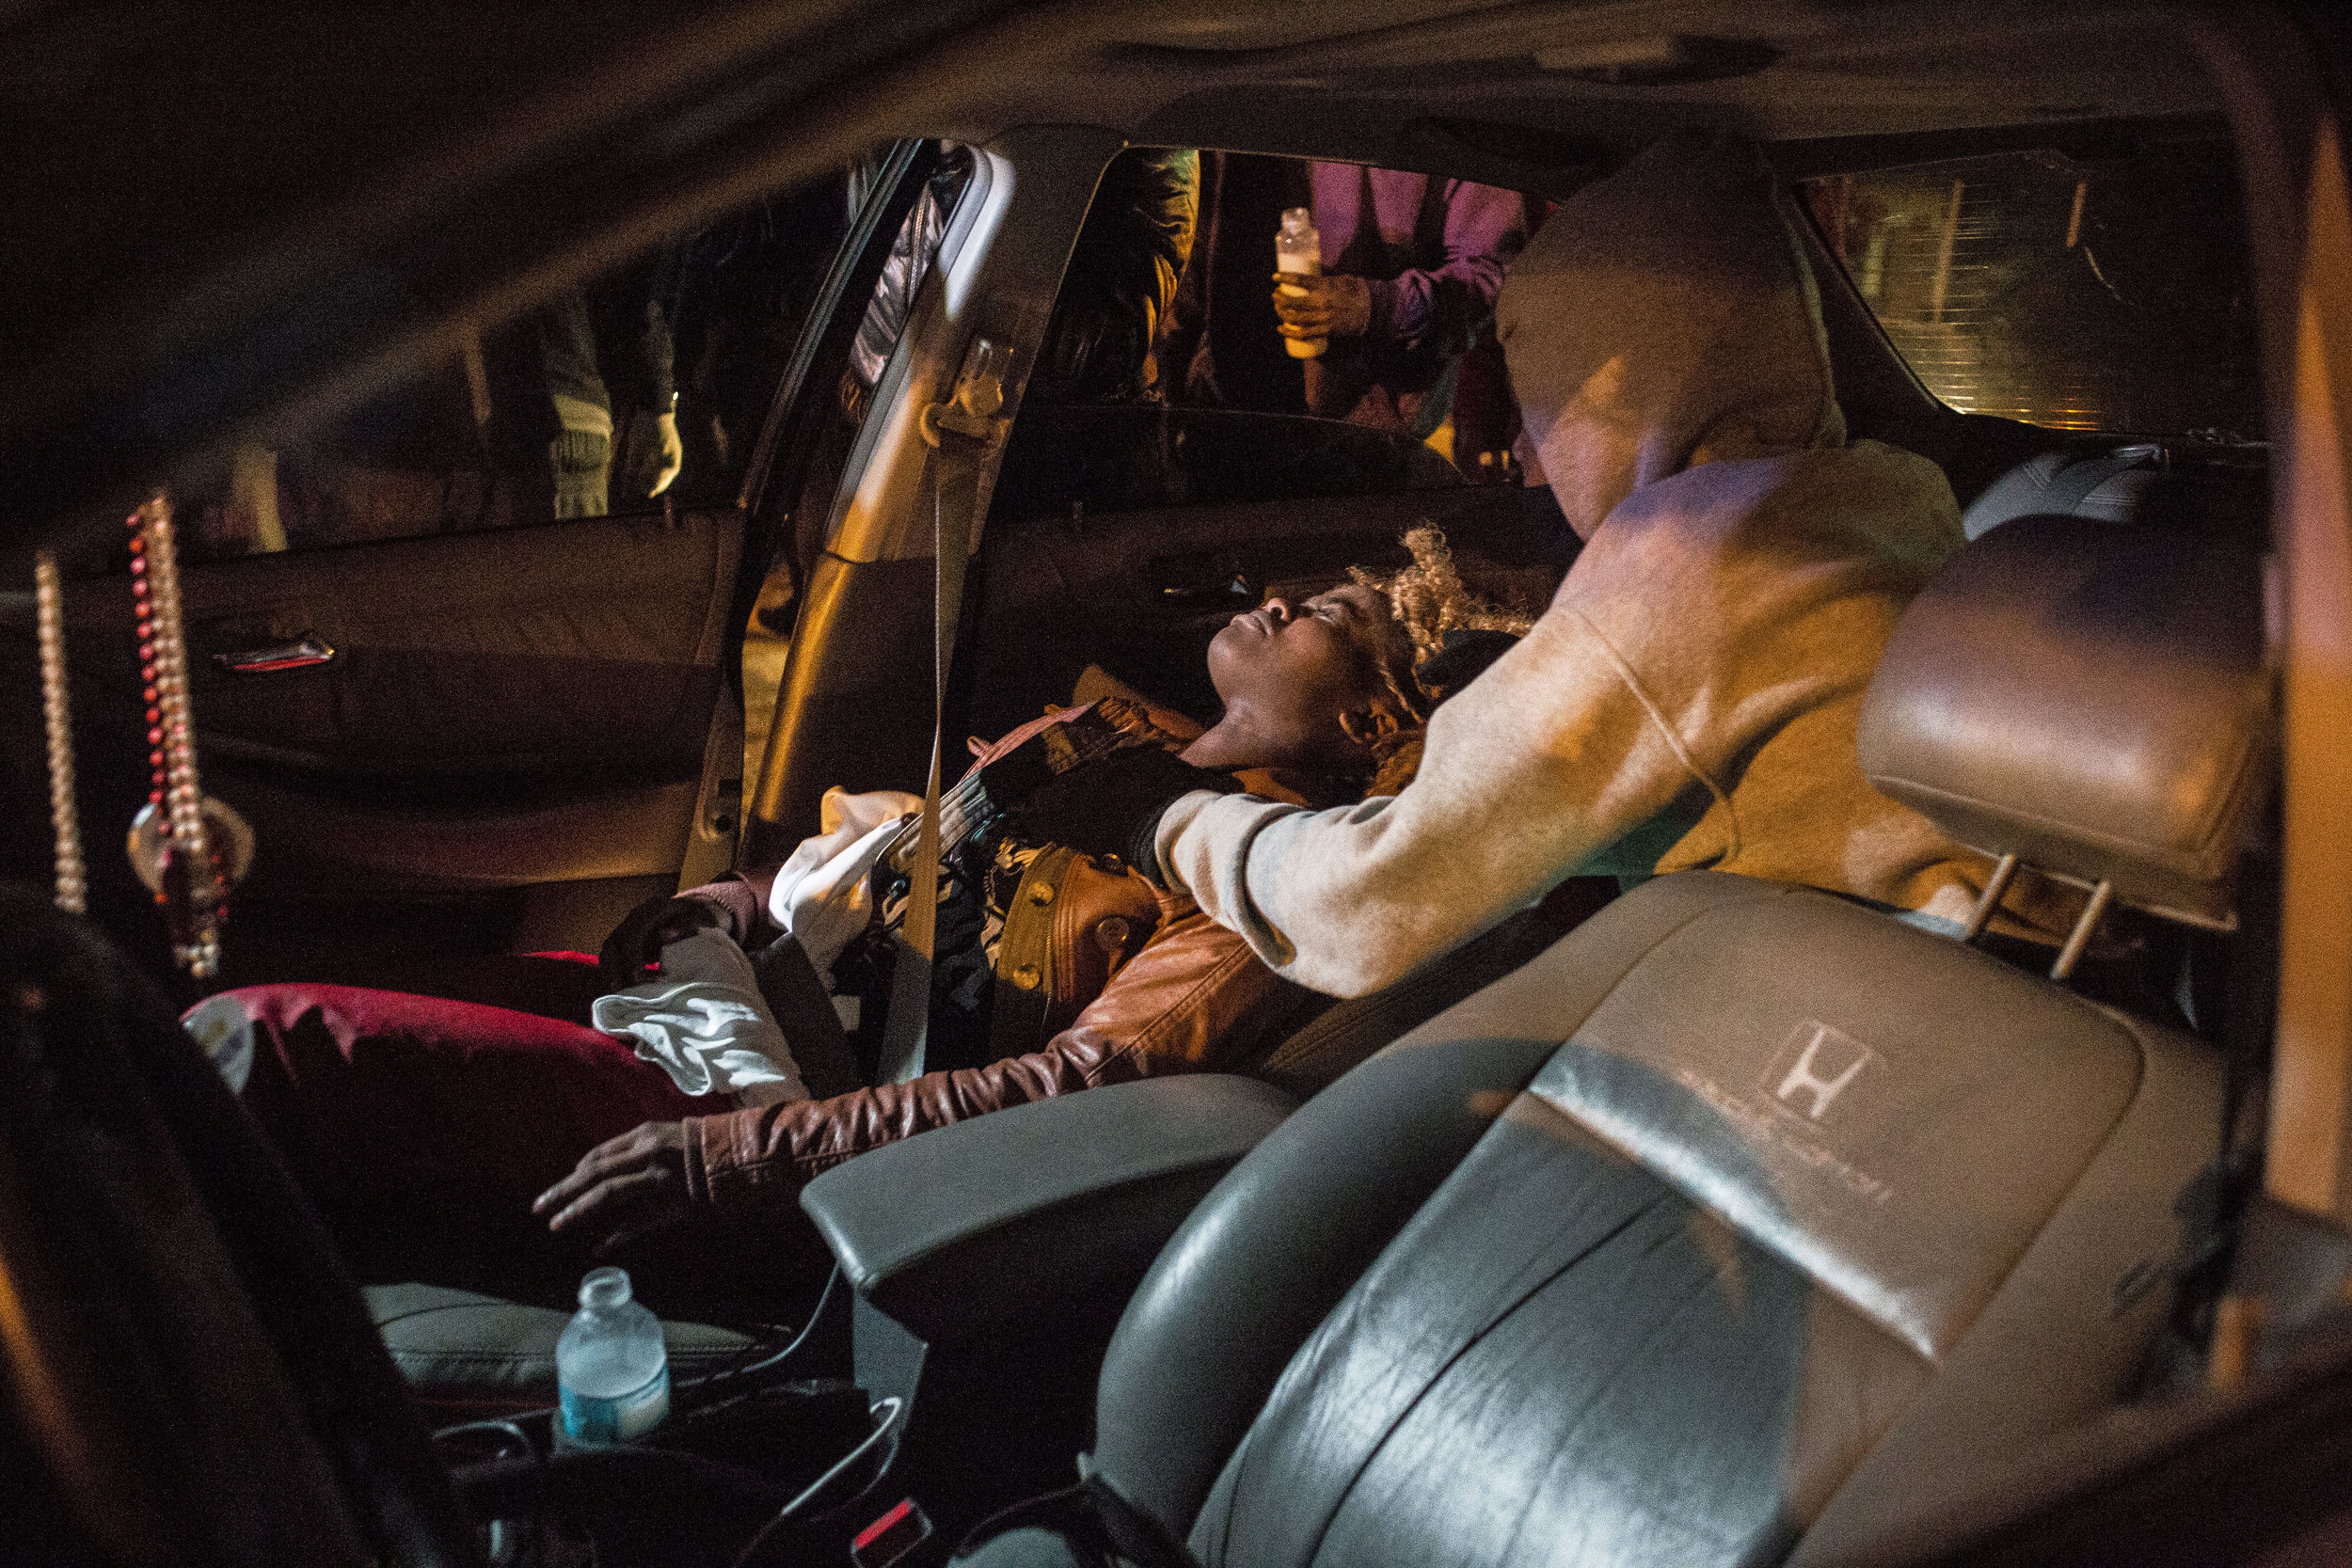 A protester lays in a car after police sprayed her with tear gas on Nov. 24, 2014 in Ferguson, MO.